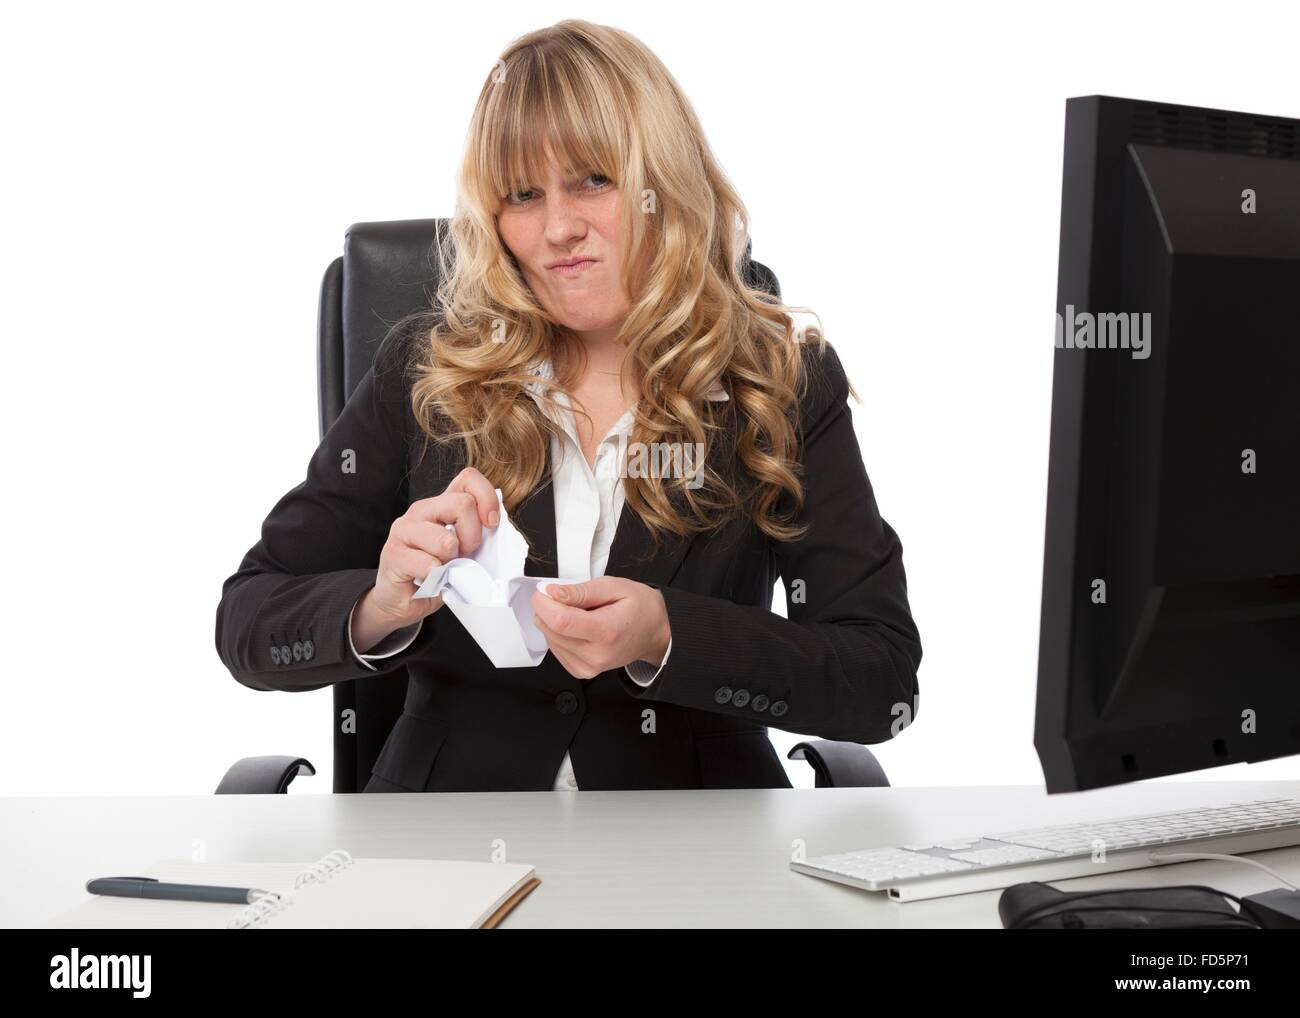 Disgusted businesswoman sitting at her desk ripping up a paper document with a grimace showing her dissatisfaction - Stock Image